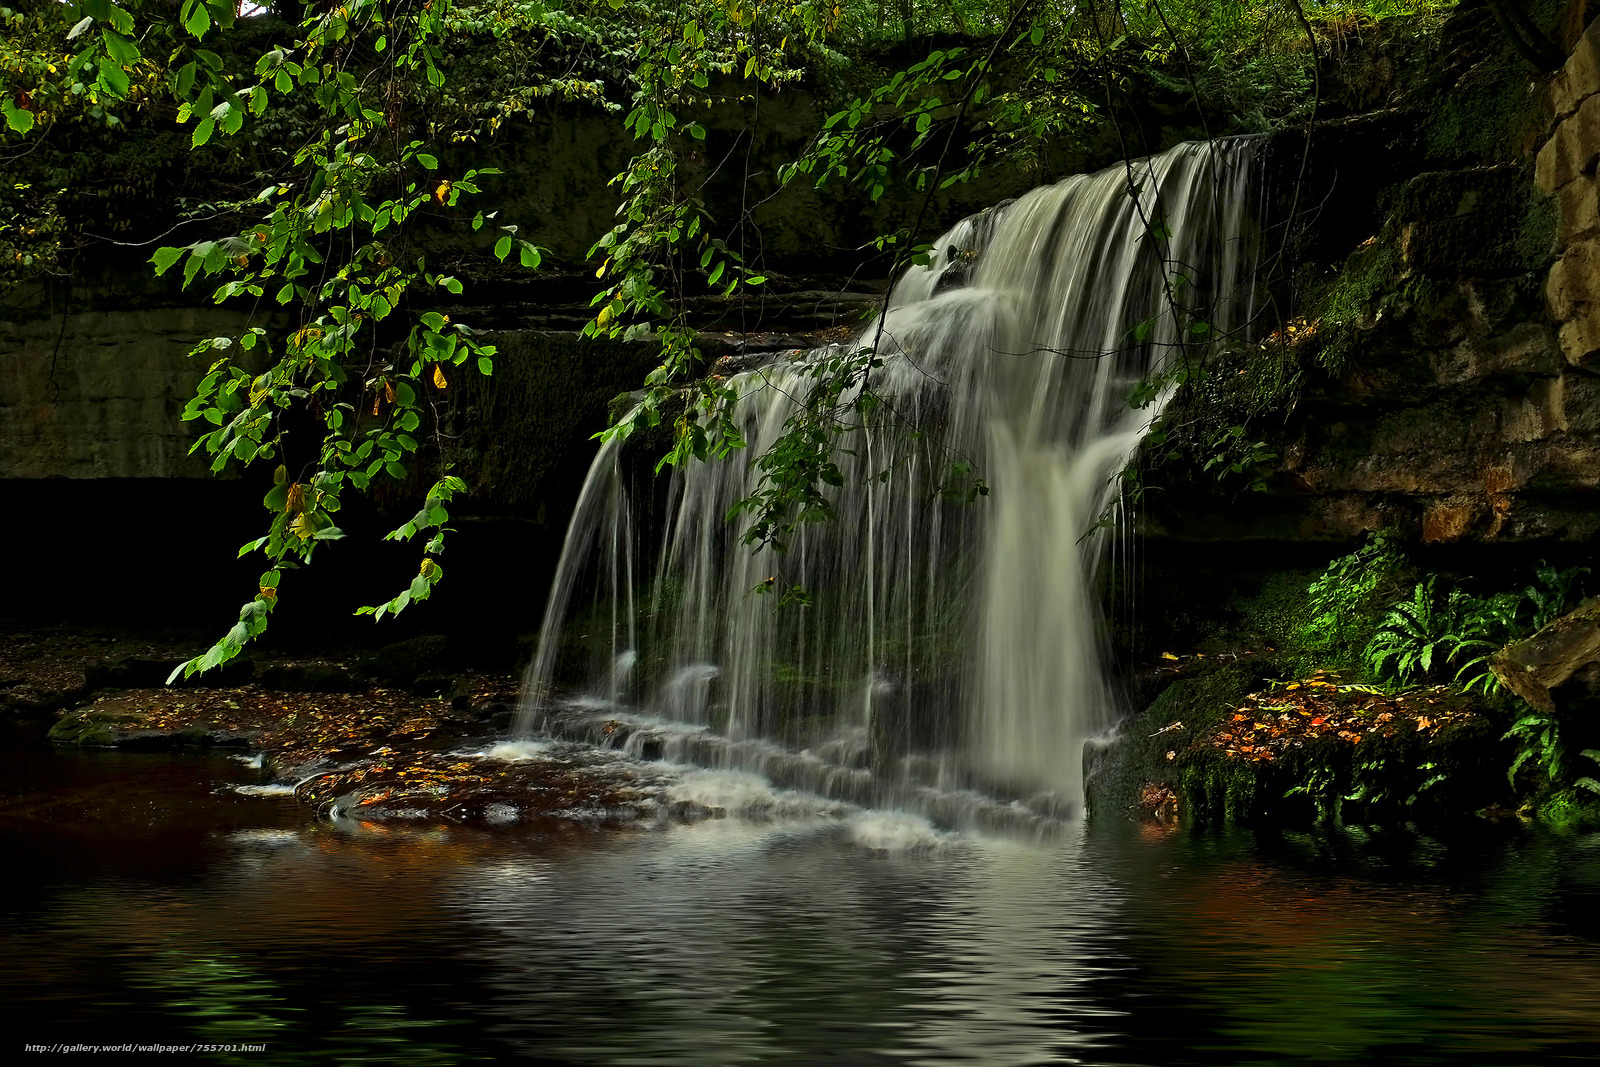 River, forest, trees, nature, waterfall, landscape